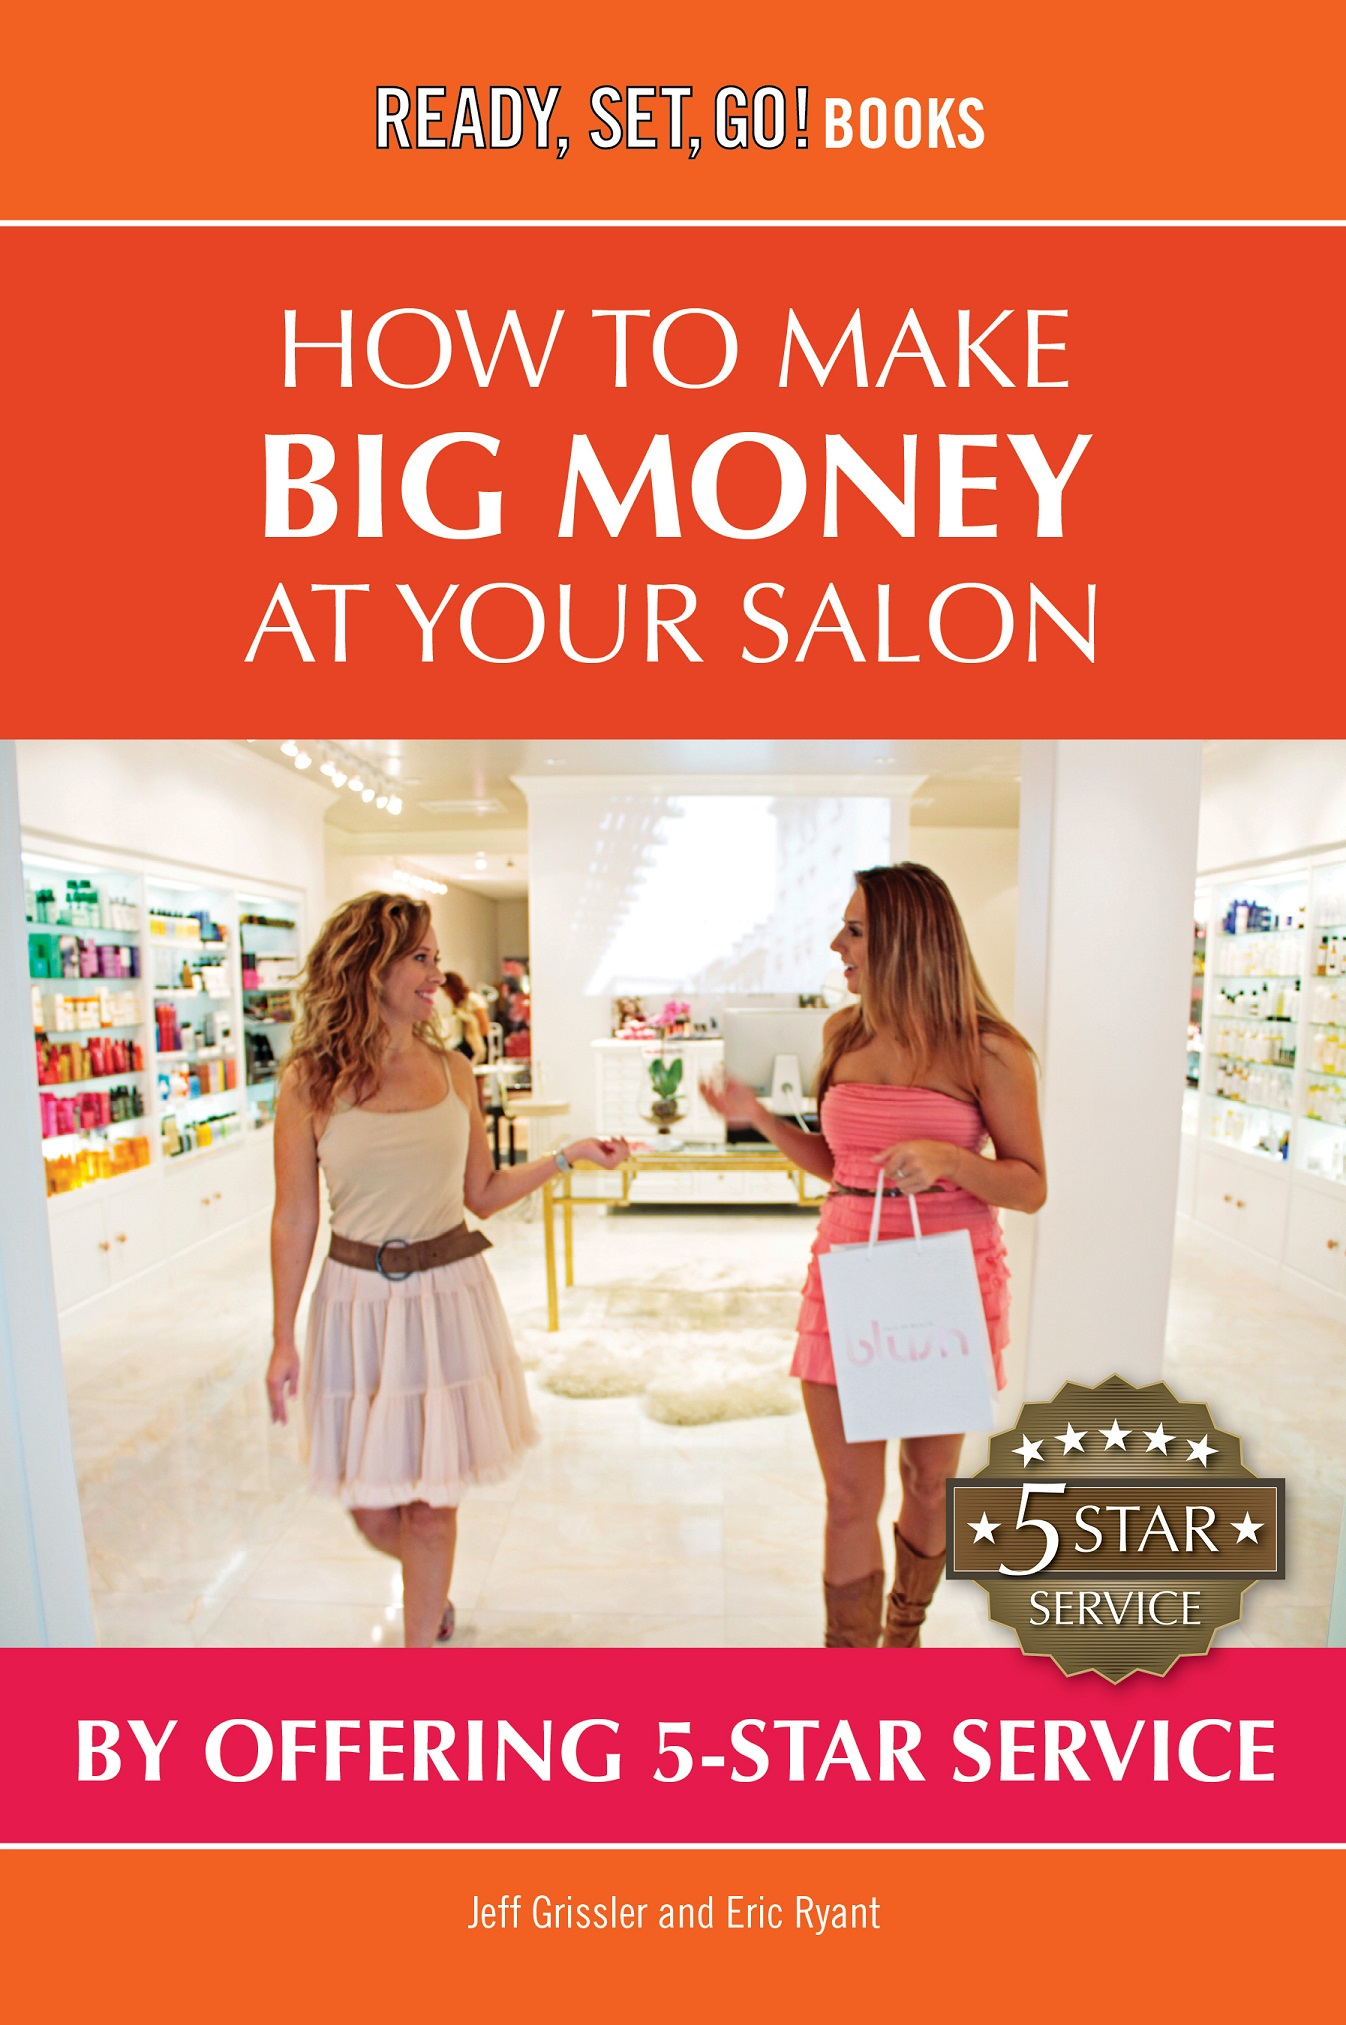 How to get rich quick owning a beauty salon wise media for 4 star salon services